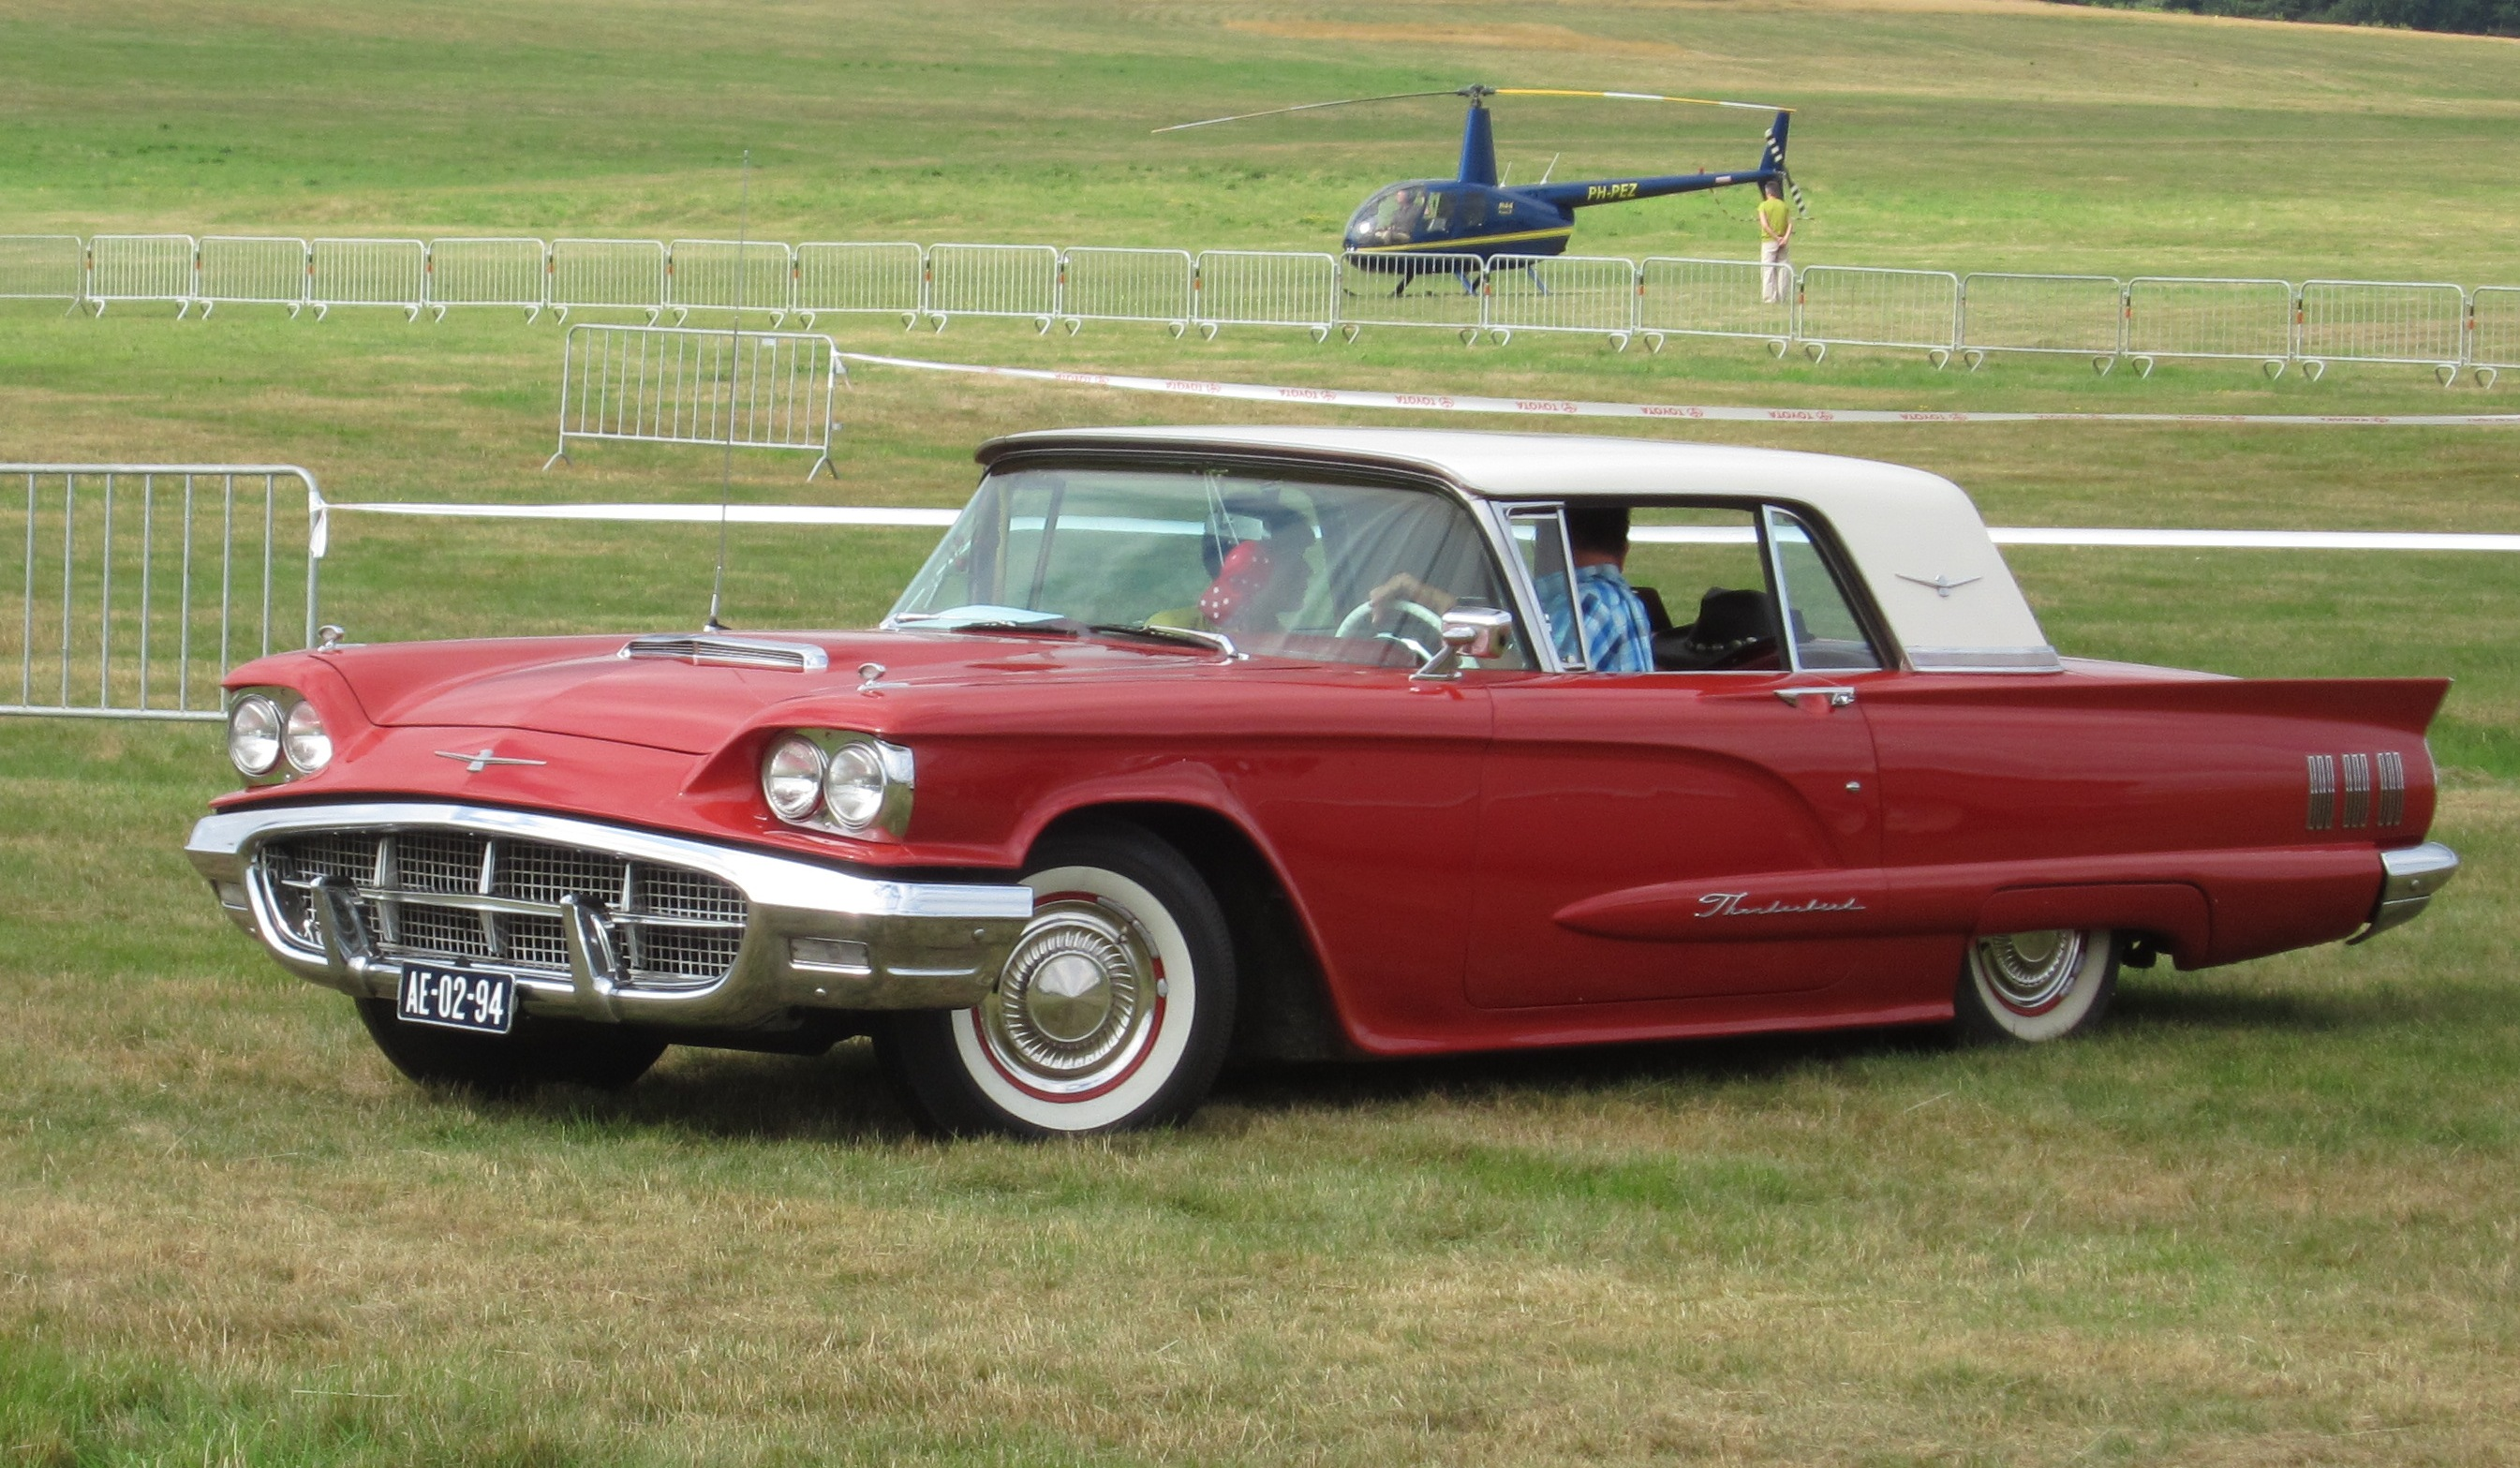 file ford thunderbird 1960 at schaffen diest fly drive. Cars Review. Best American Auto & Cars Review